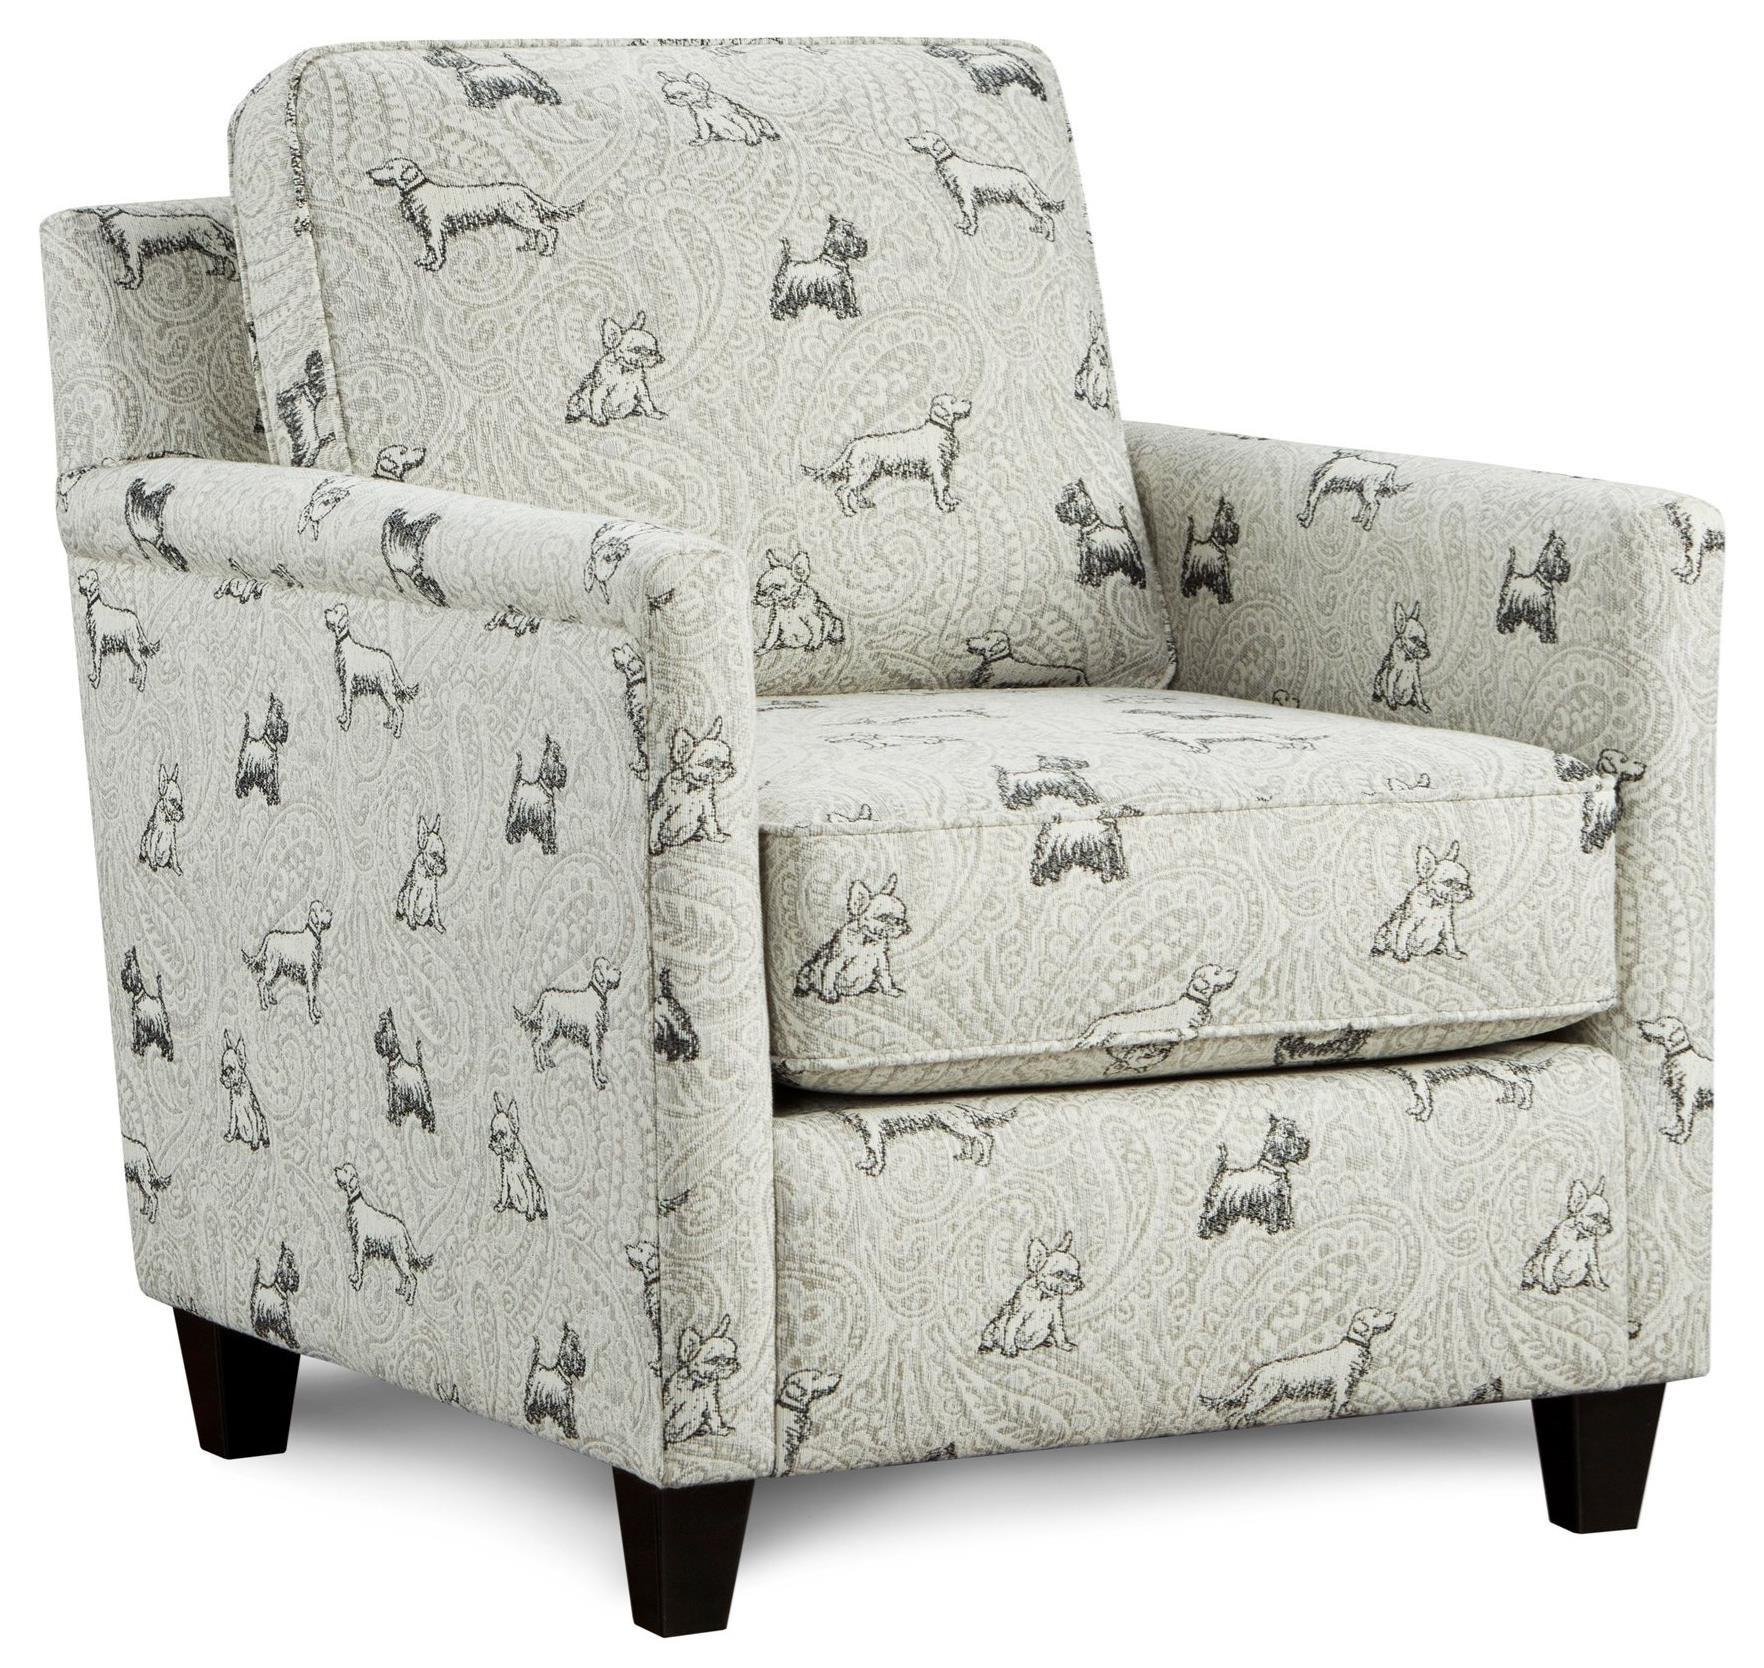 21-02 Accent Chair by FN at Lindy's Furniture Company